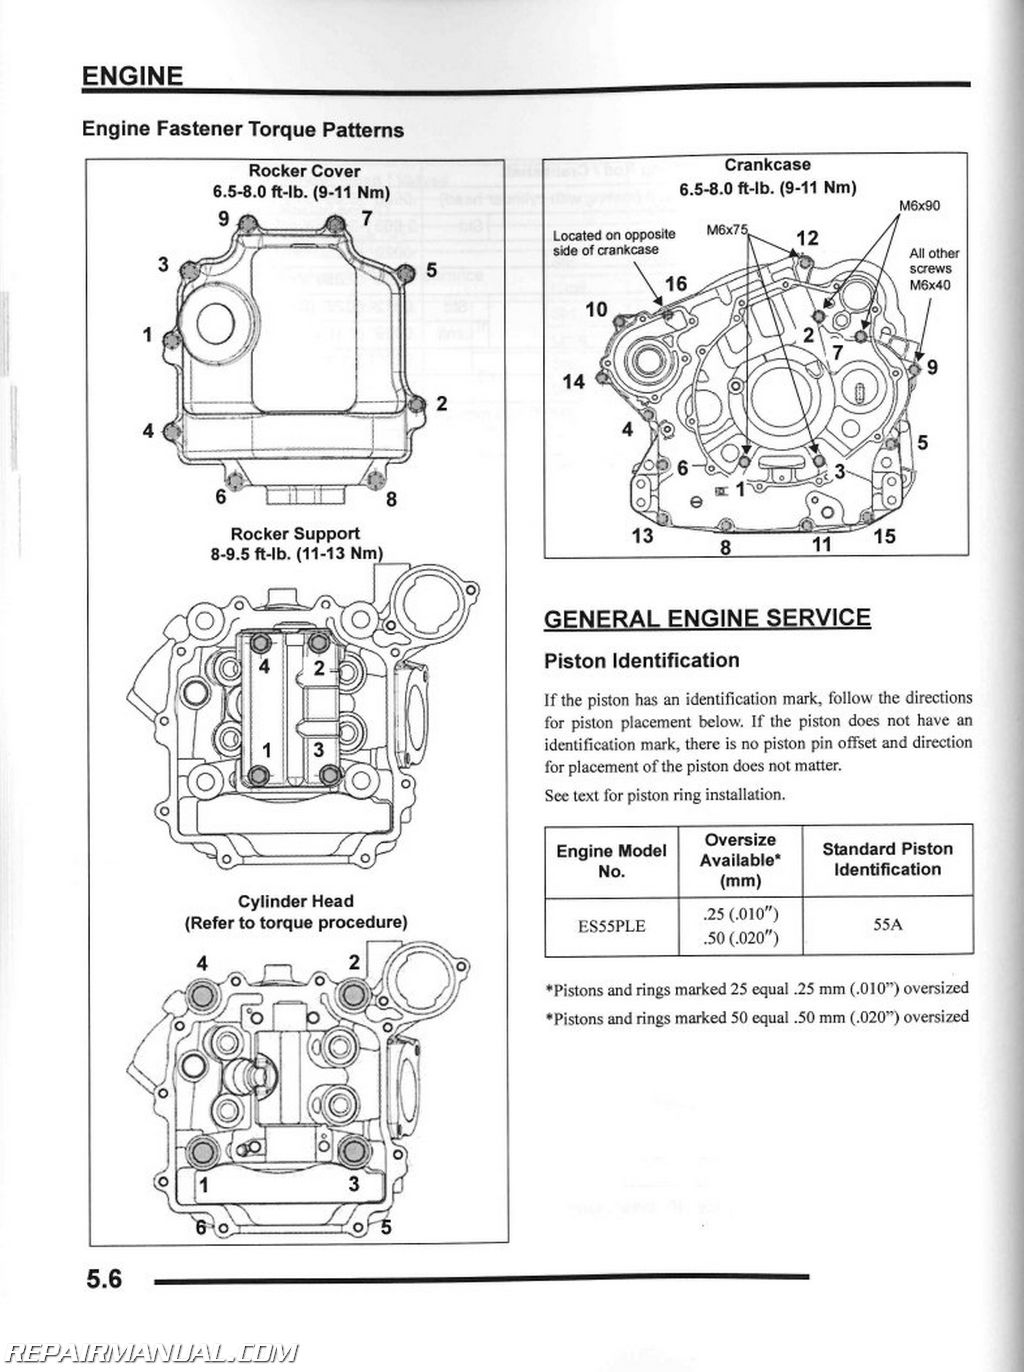 2011 Polaris Rzr 800 Wiring Diagram Opinions About 900 Atv 2010 Sportsman Xp 550 Service Manual 2009